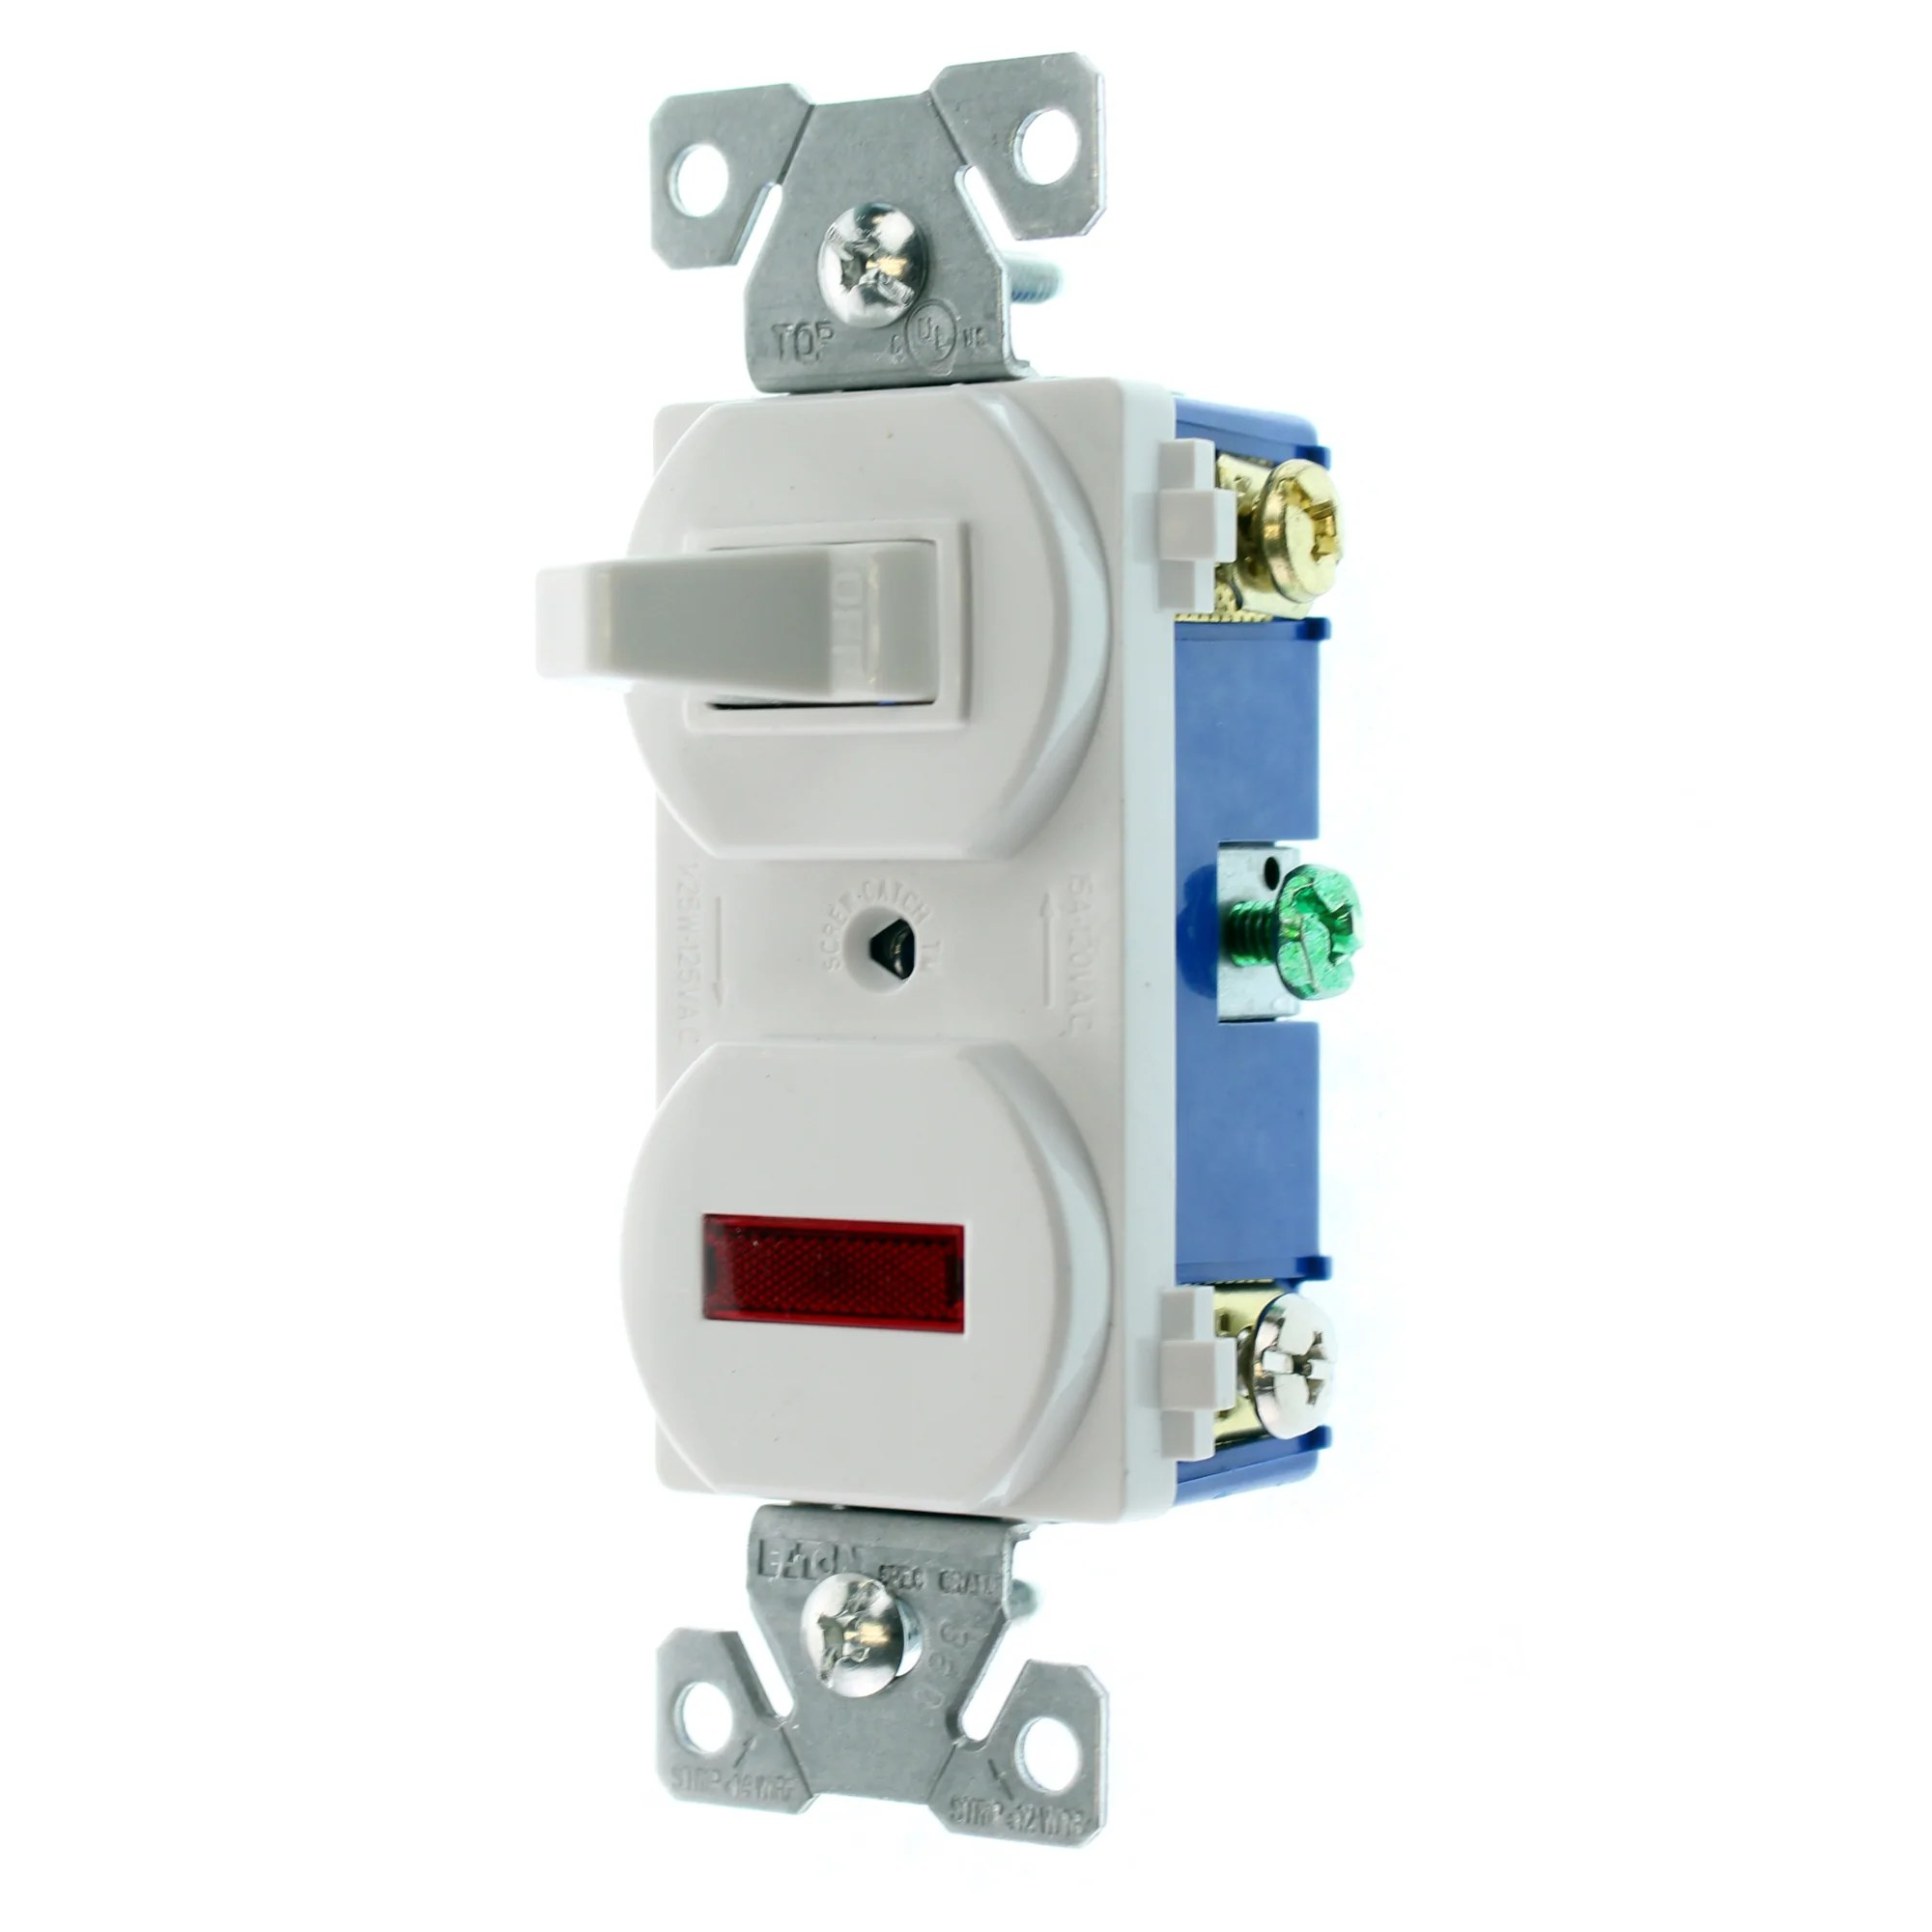 eaton cooper 277w sp l toggle switch w pilot light 1 pole 15a how to wire cooper 277 pilot light switch share the knownledge [ 2000 x 2000 Pixel ]